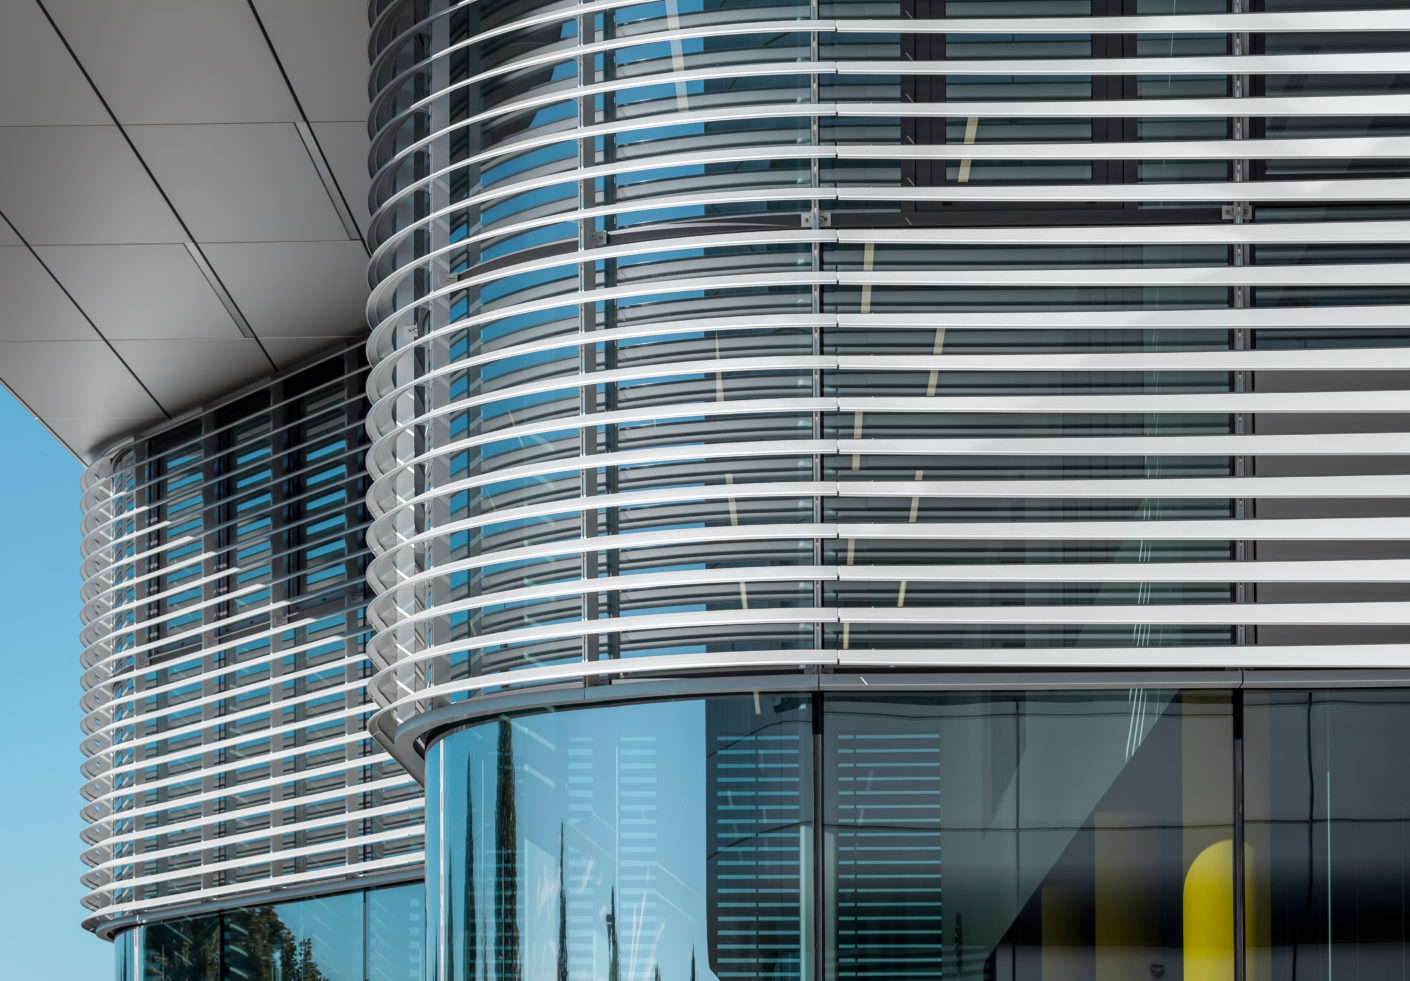 Harmonious colors and improved cladding resilience is guaranteed by giving the surface an anodized coat.